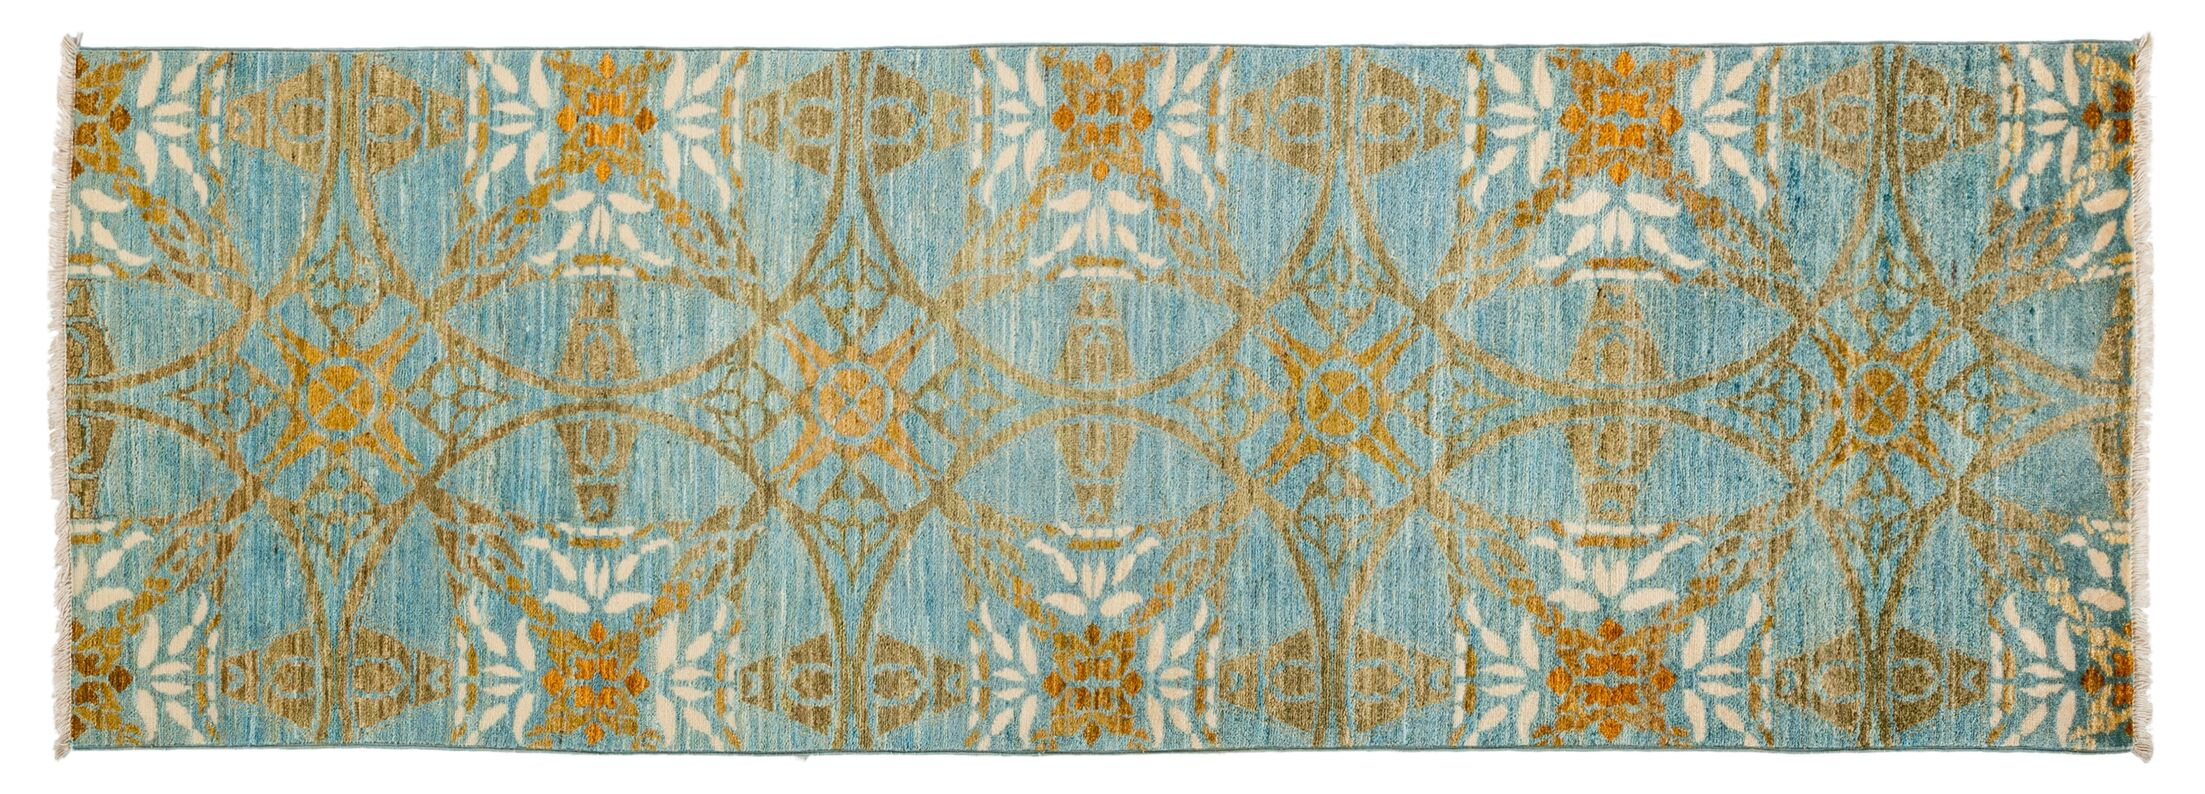 One-of-a-Kind Suzani Hand-Knotted Blue Area Rug Rug Size: Runner 2'7